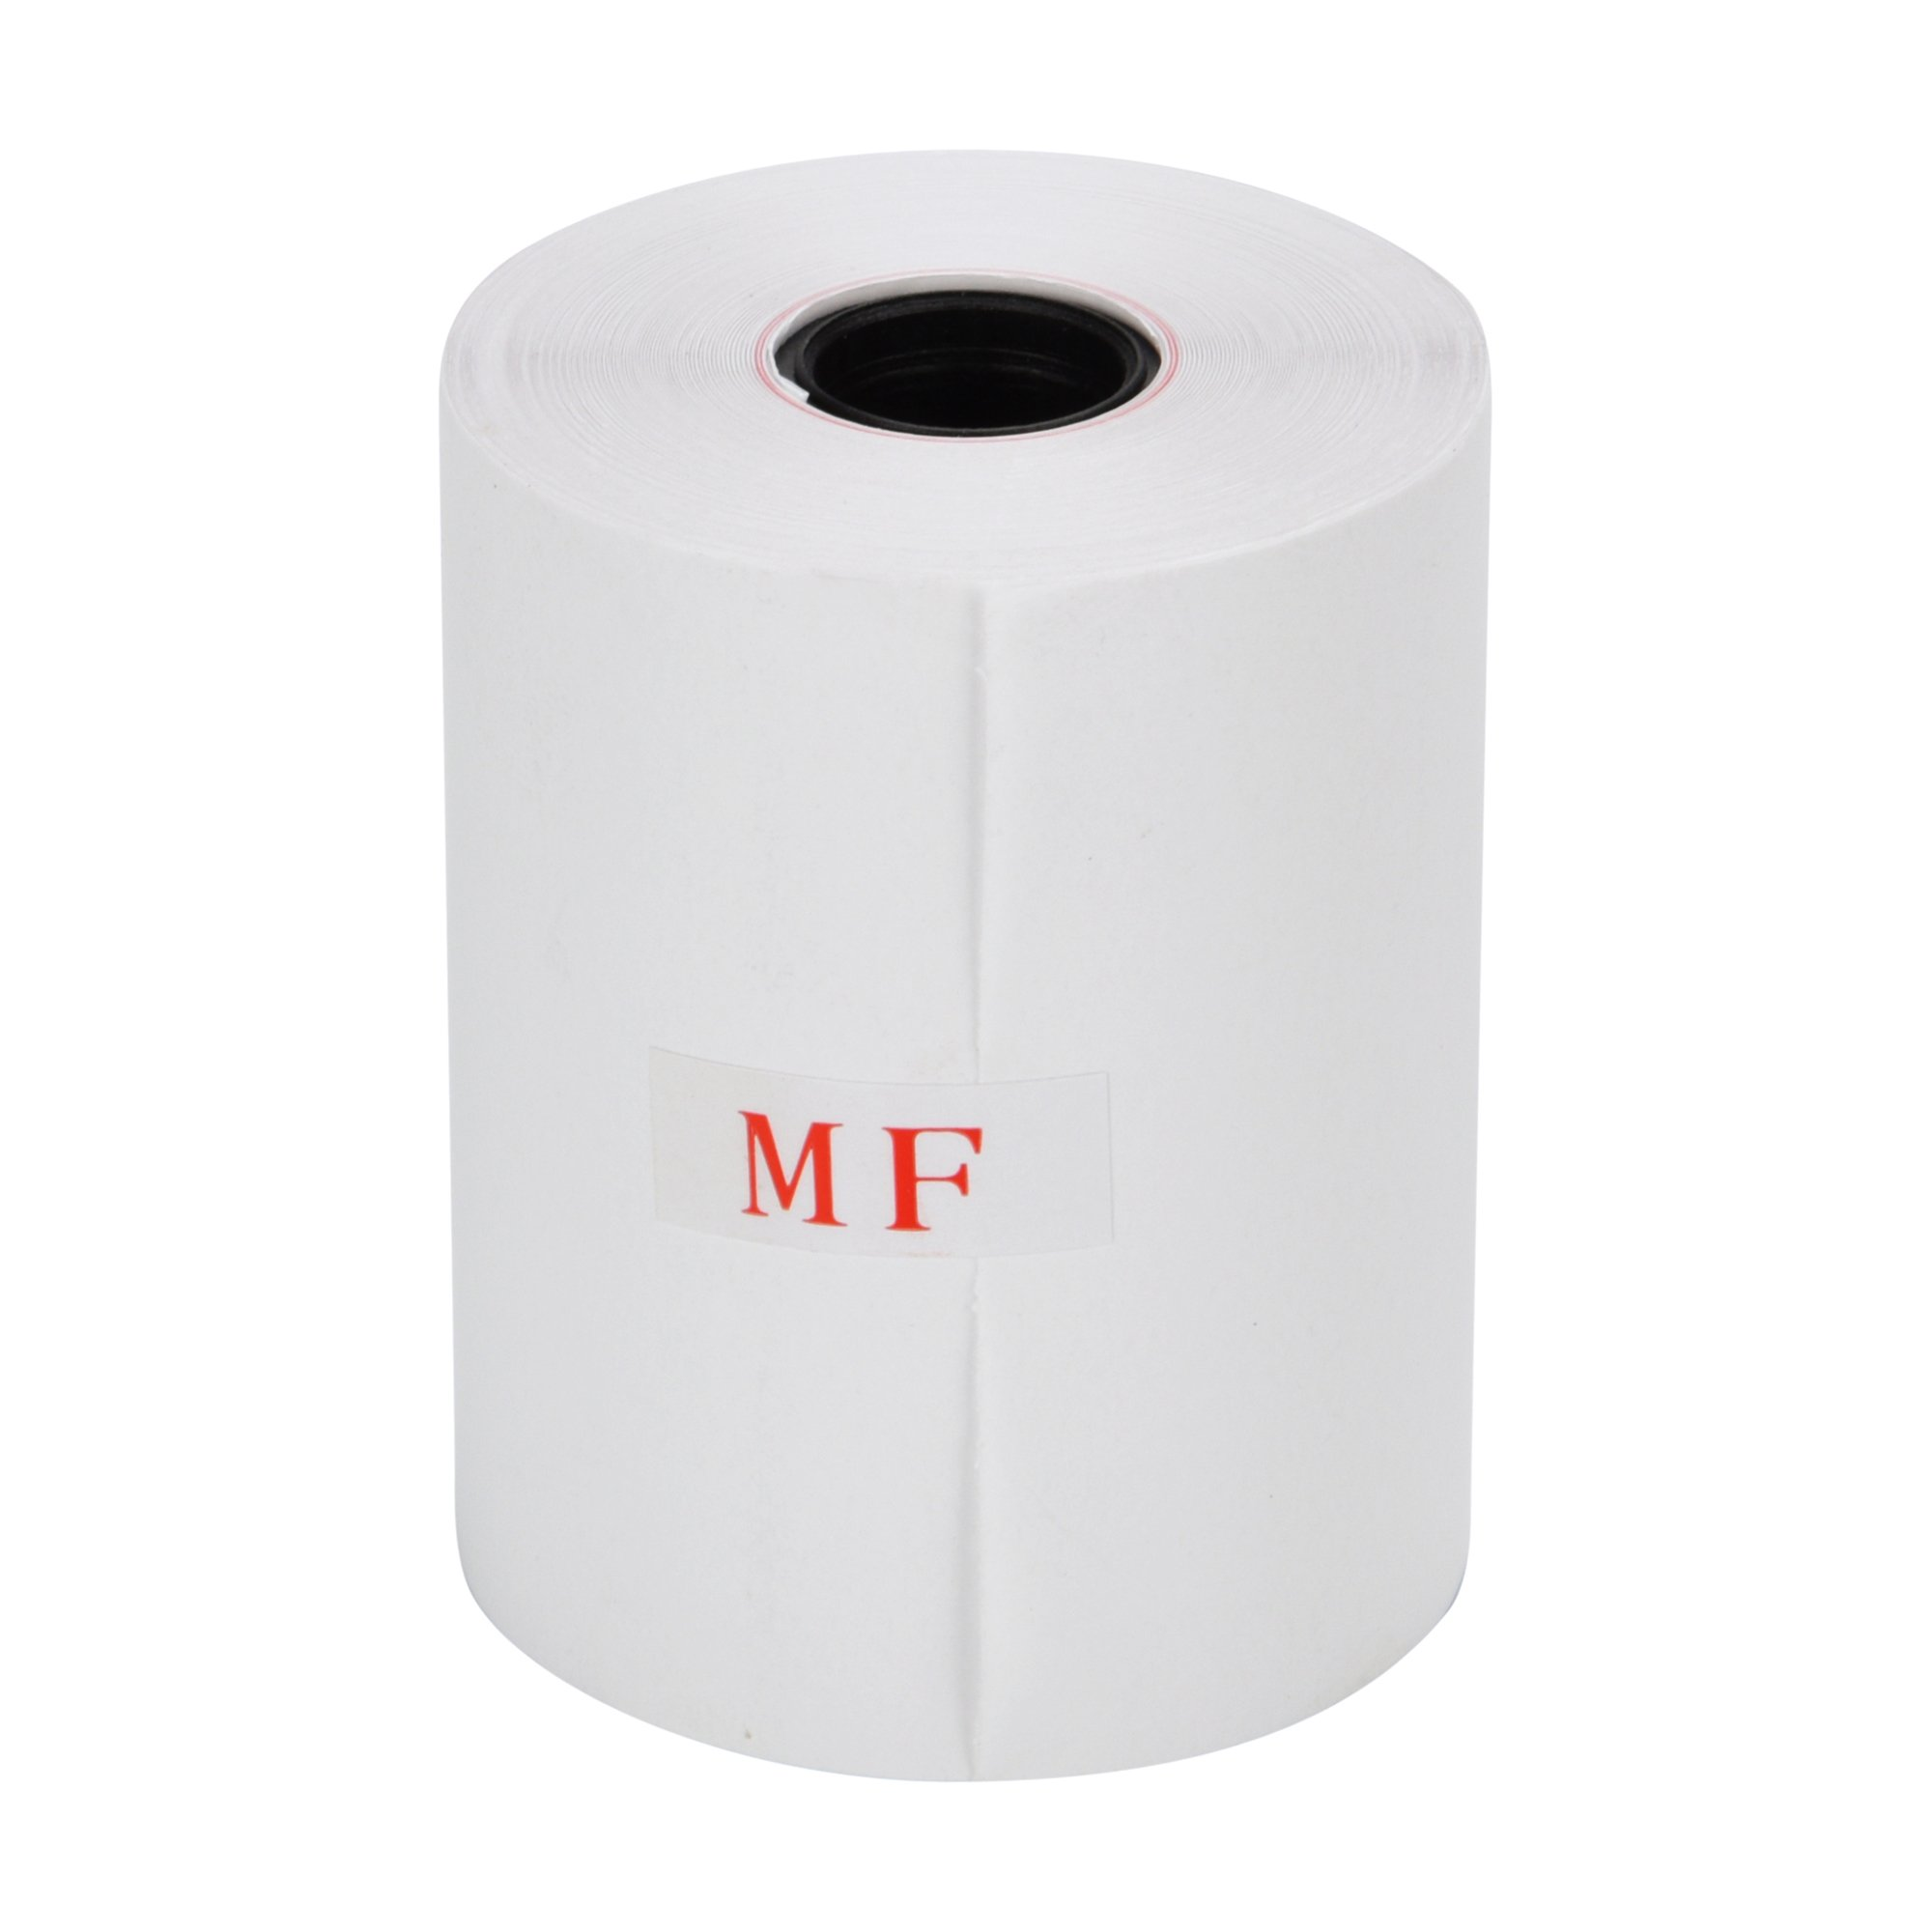 MFLABEL 50 Rolls 2 1/4'' x 85' Thermal Paper Cash Register POS Receipt Paper by MFLABEL